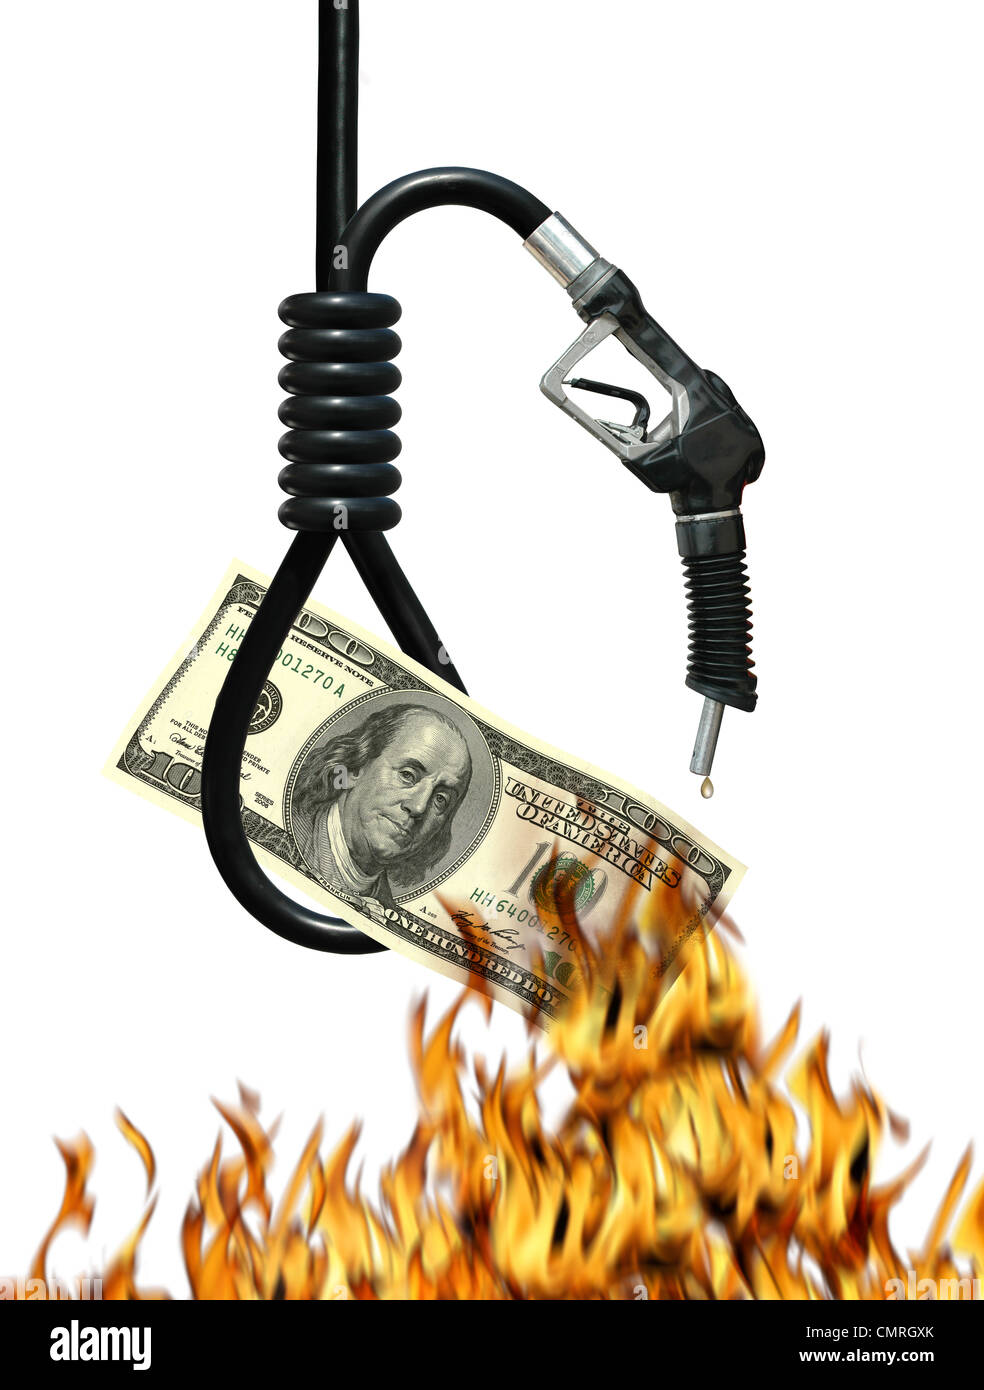 Noose, gas nozzle, money and fire metaphor symbolizing the cost of oil - Stock Image